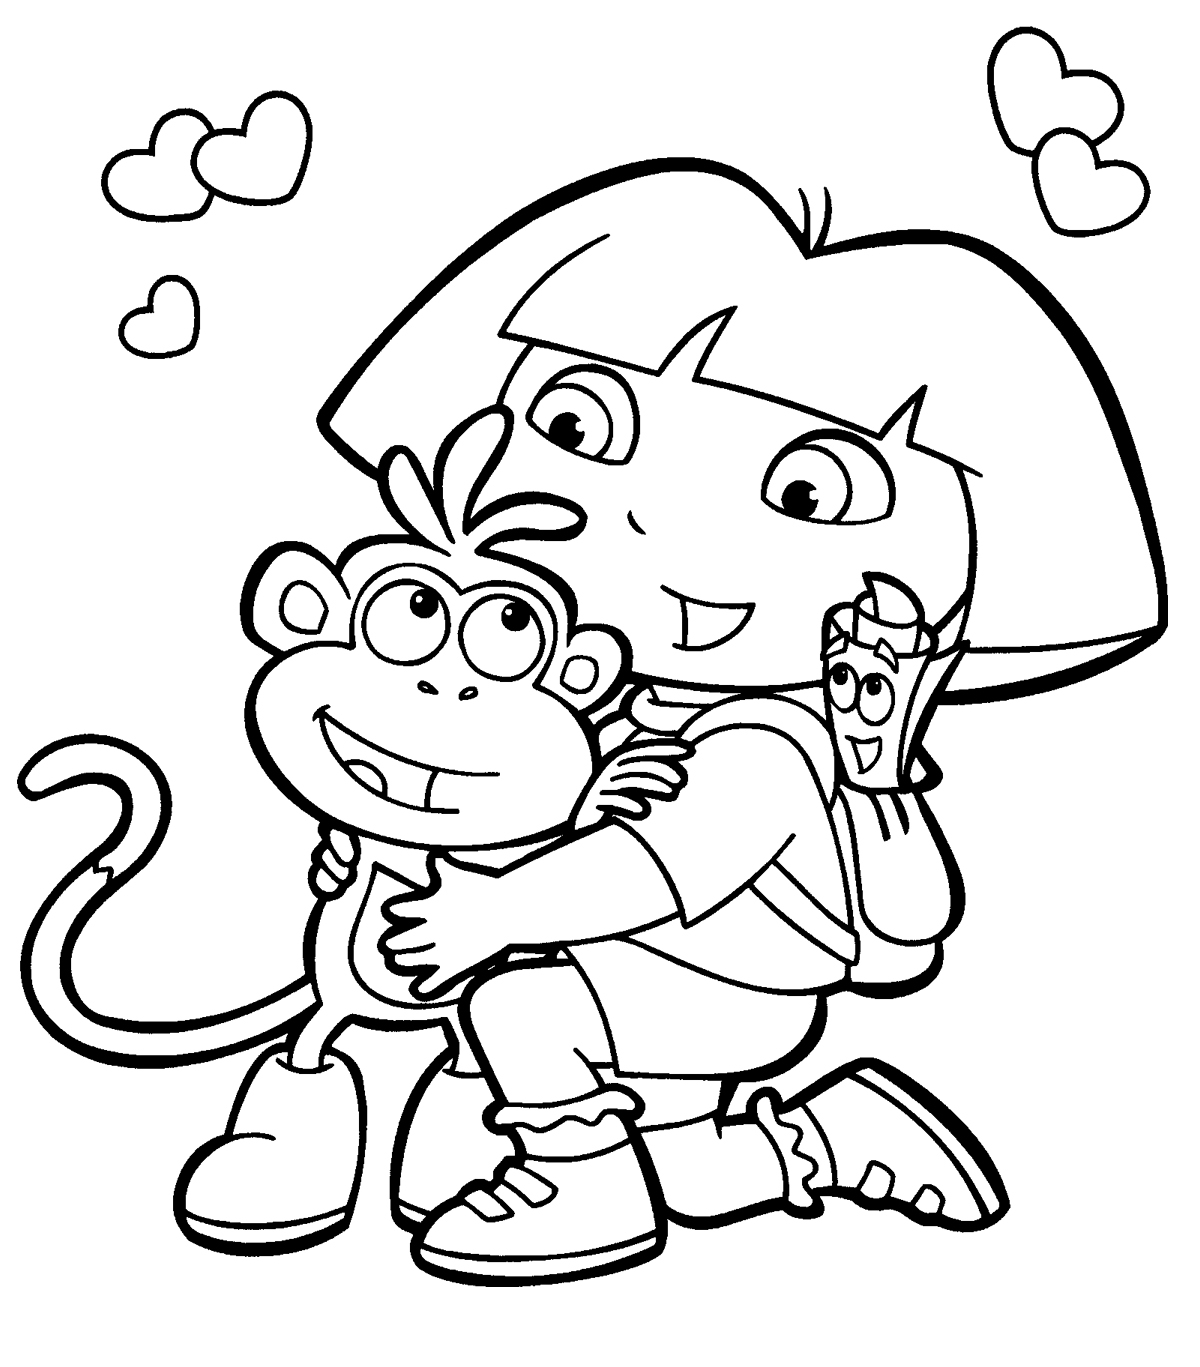 printable dora pictures print download dora coloring pages to learn new things printable pictures dora